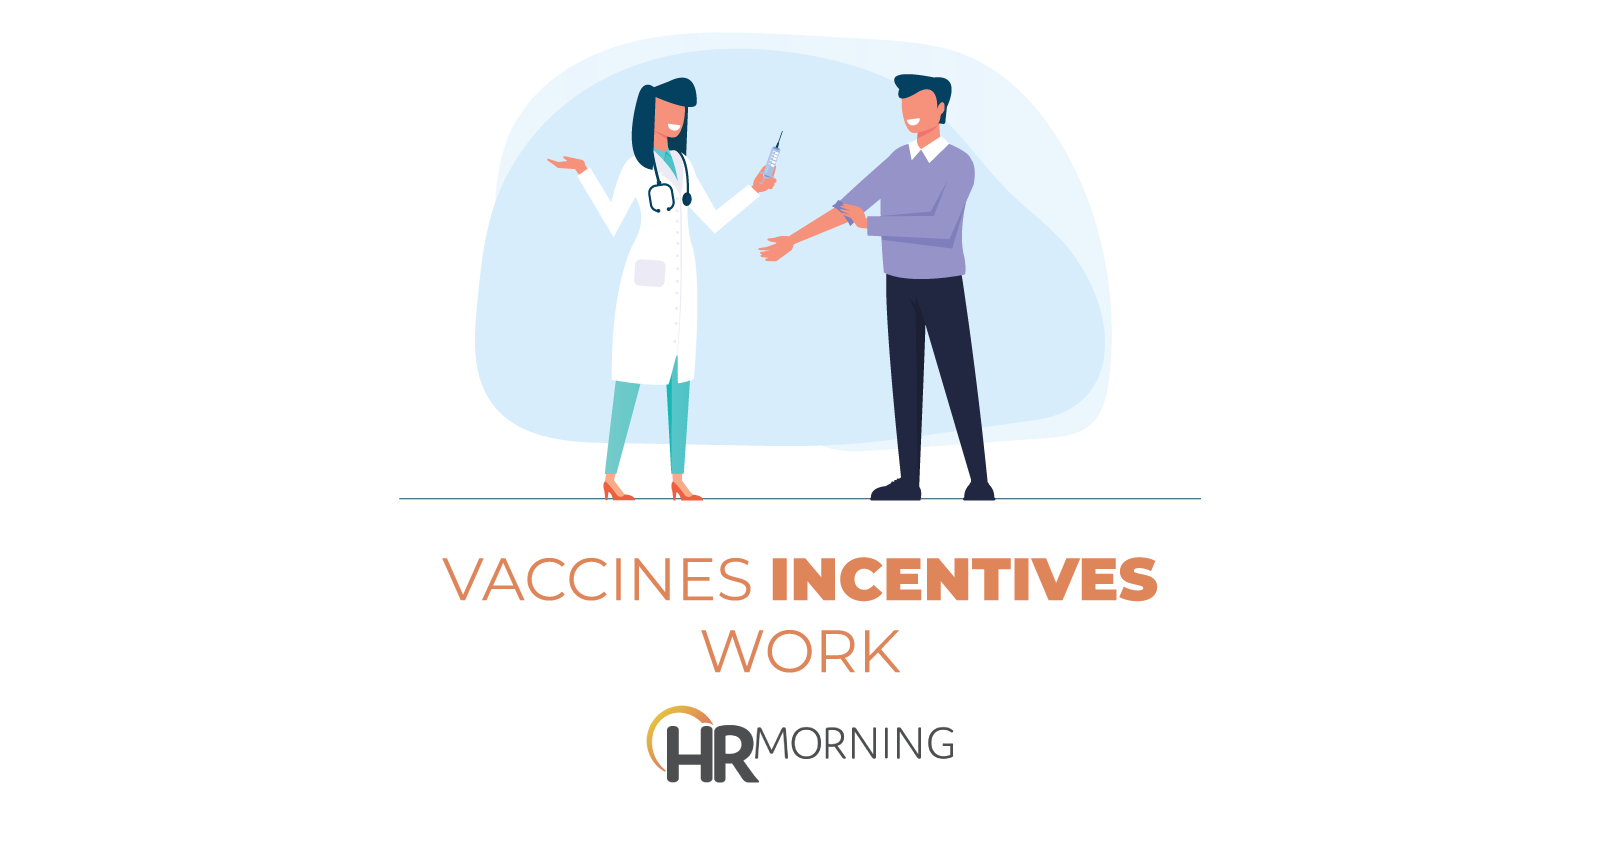 vaccine incentives work